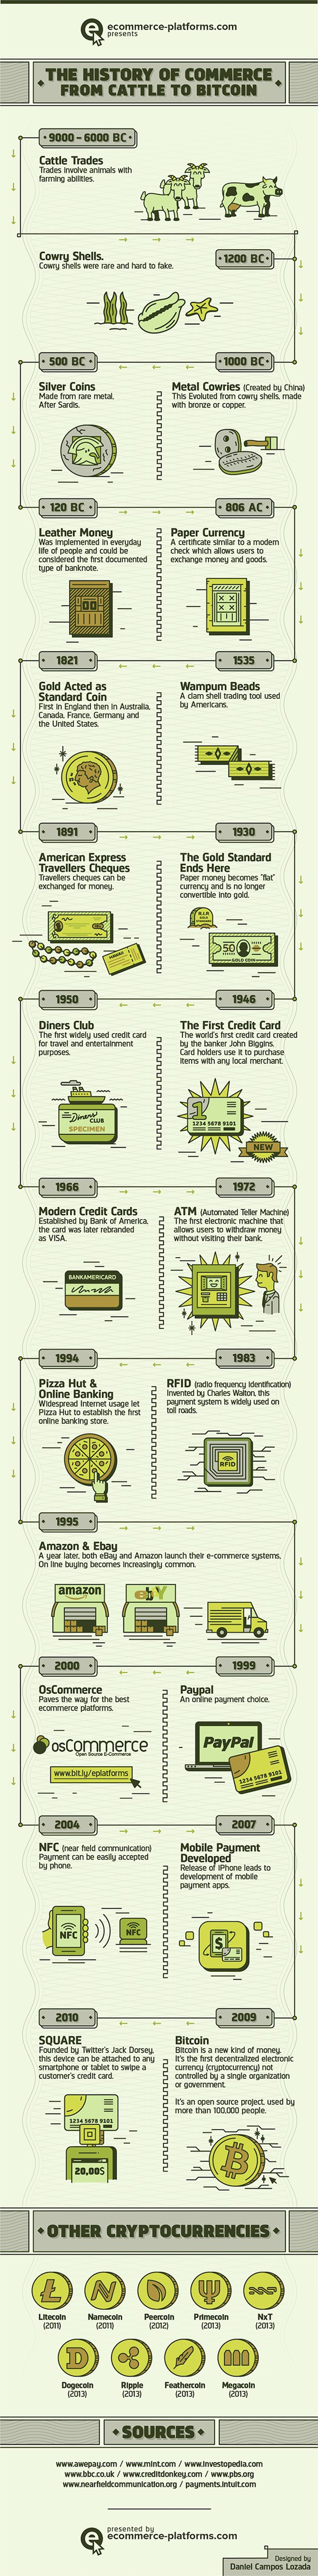 The History of Commerce